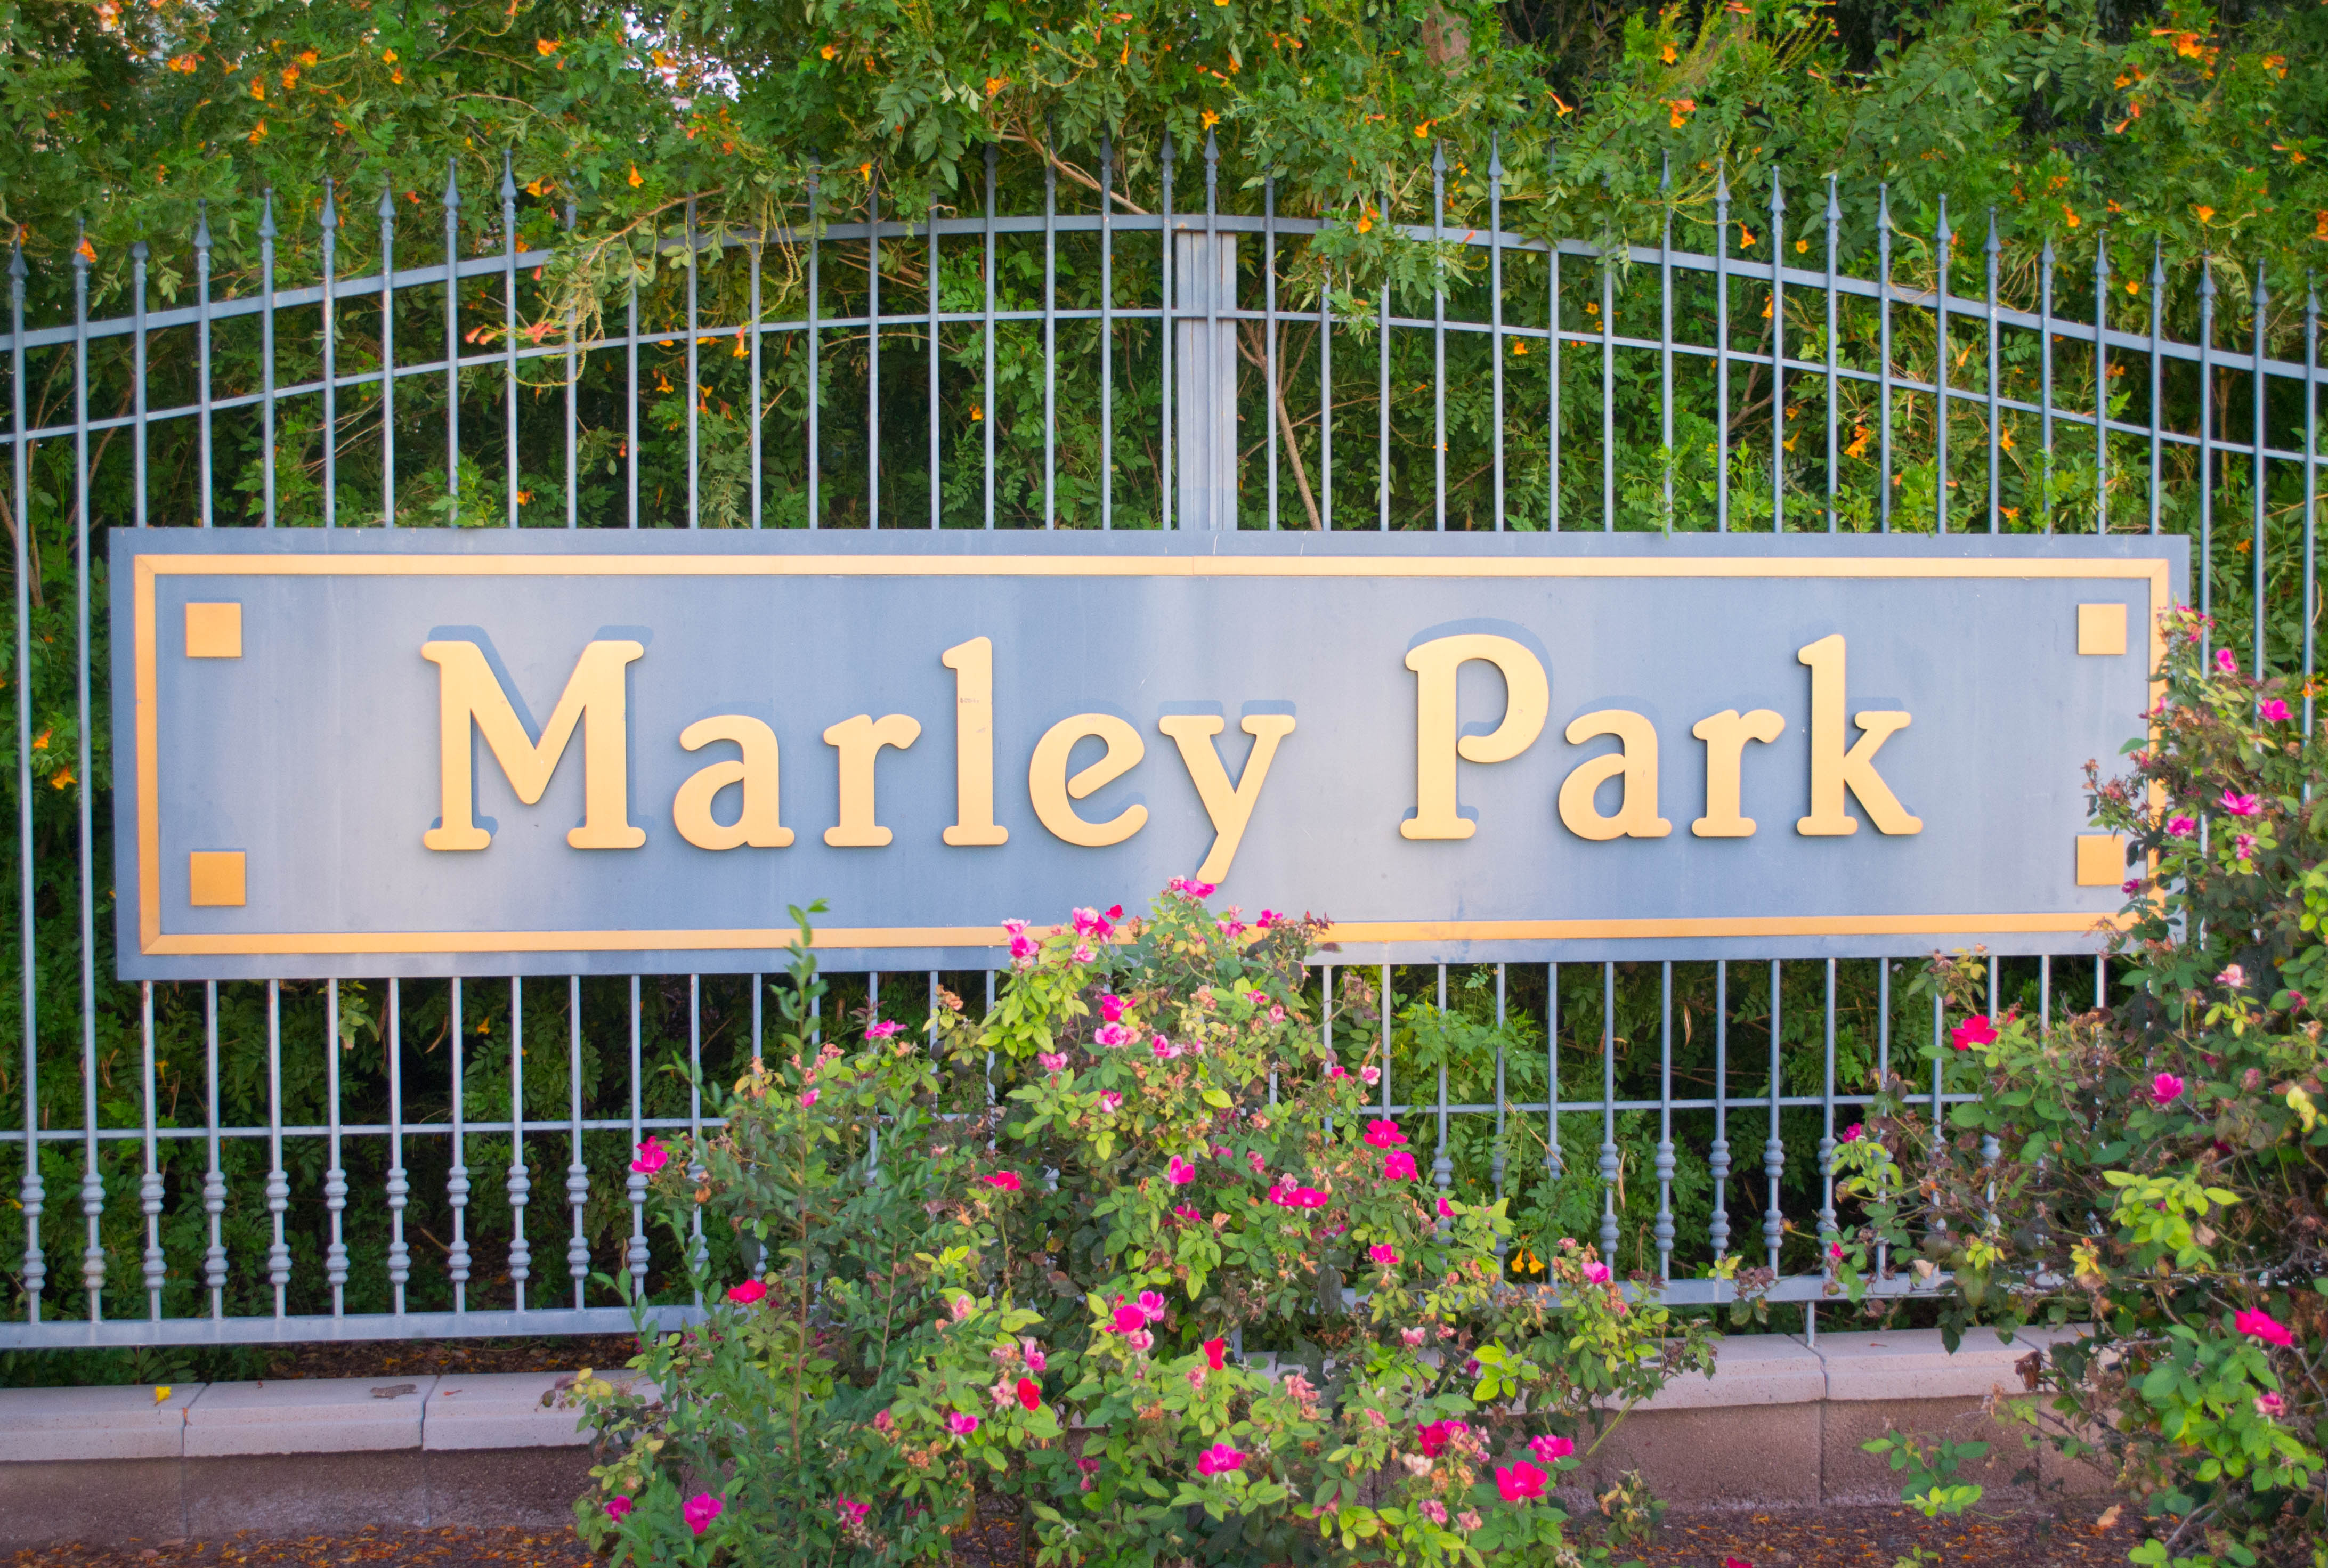 <!DOCTYPE html> <html> <head> <style> p {text-align:center;} </style> </head> <body>  <p>Marley Park